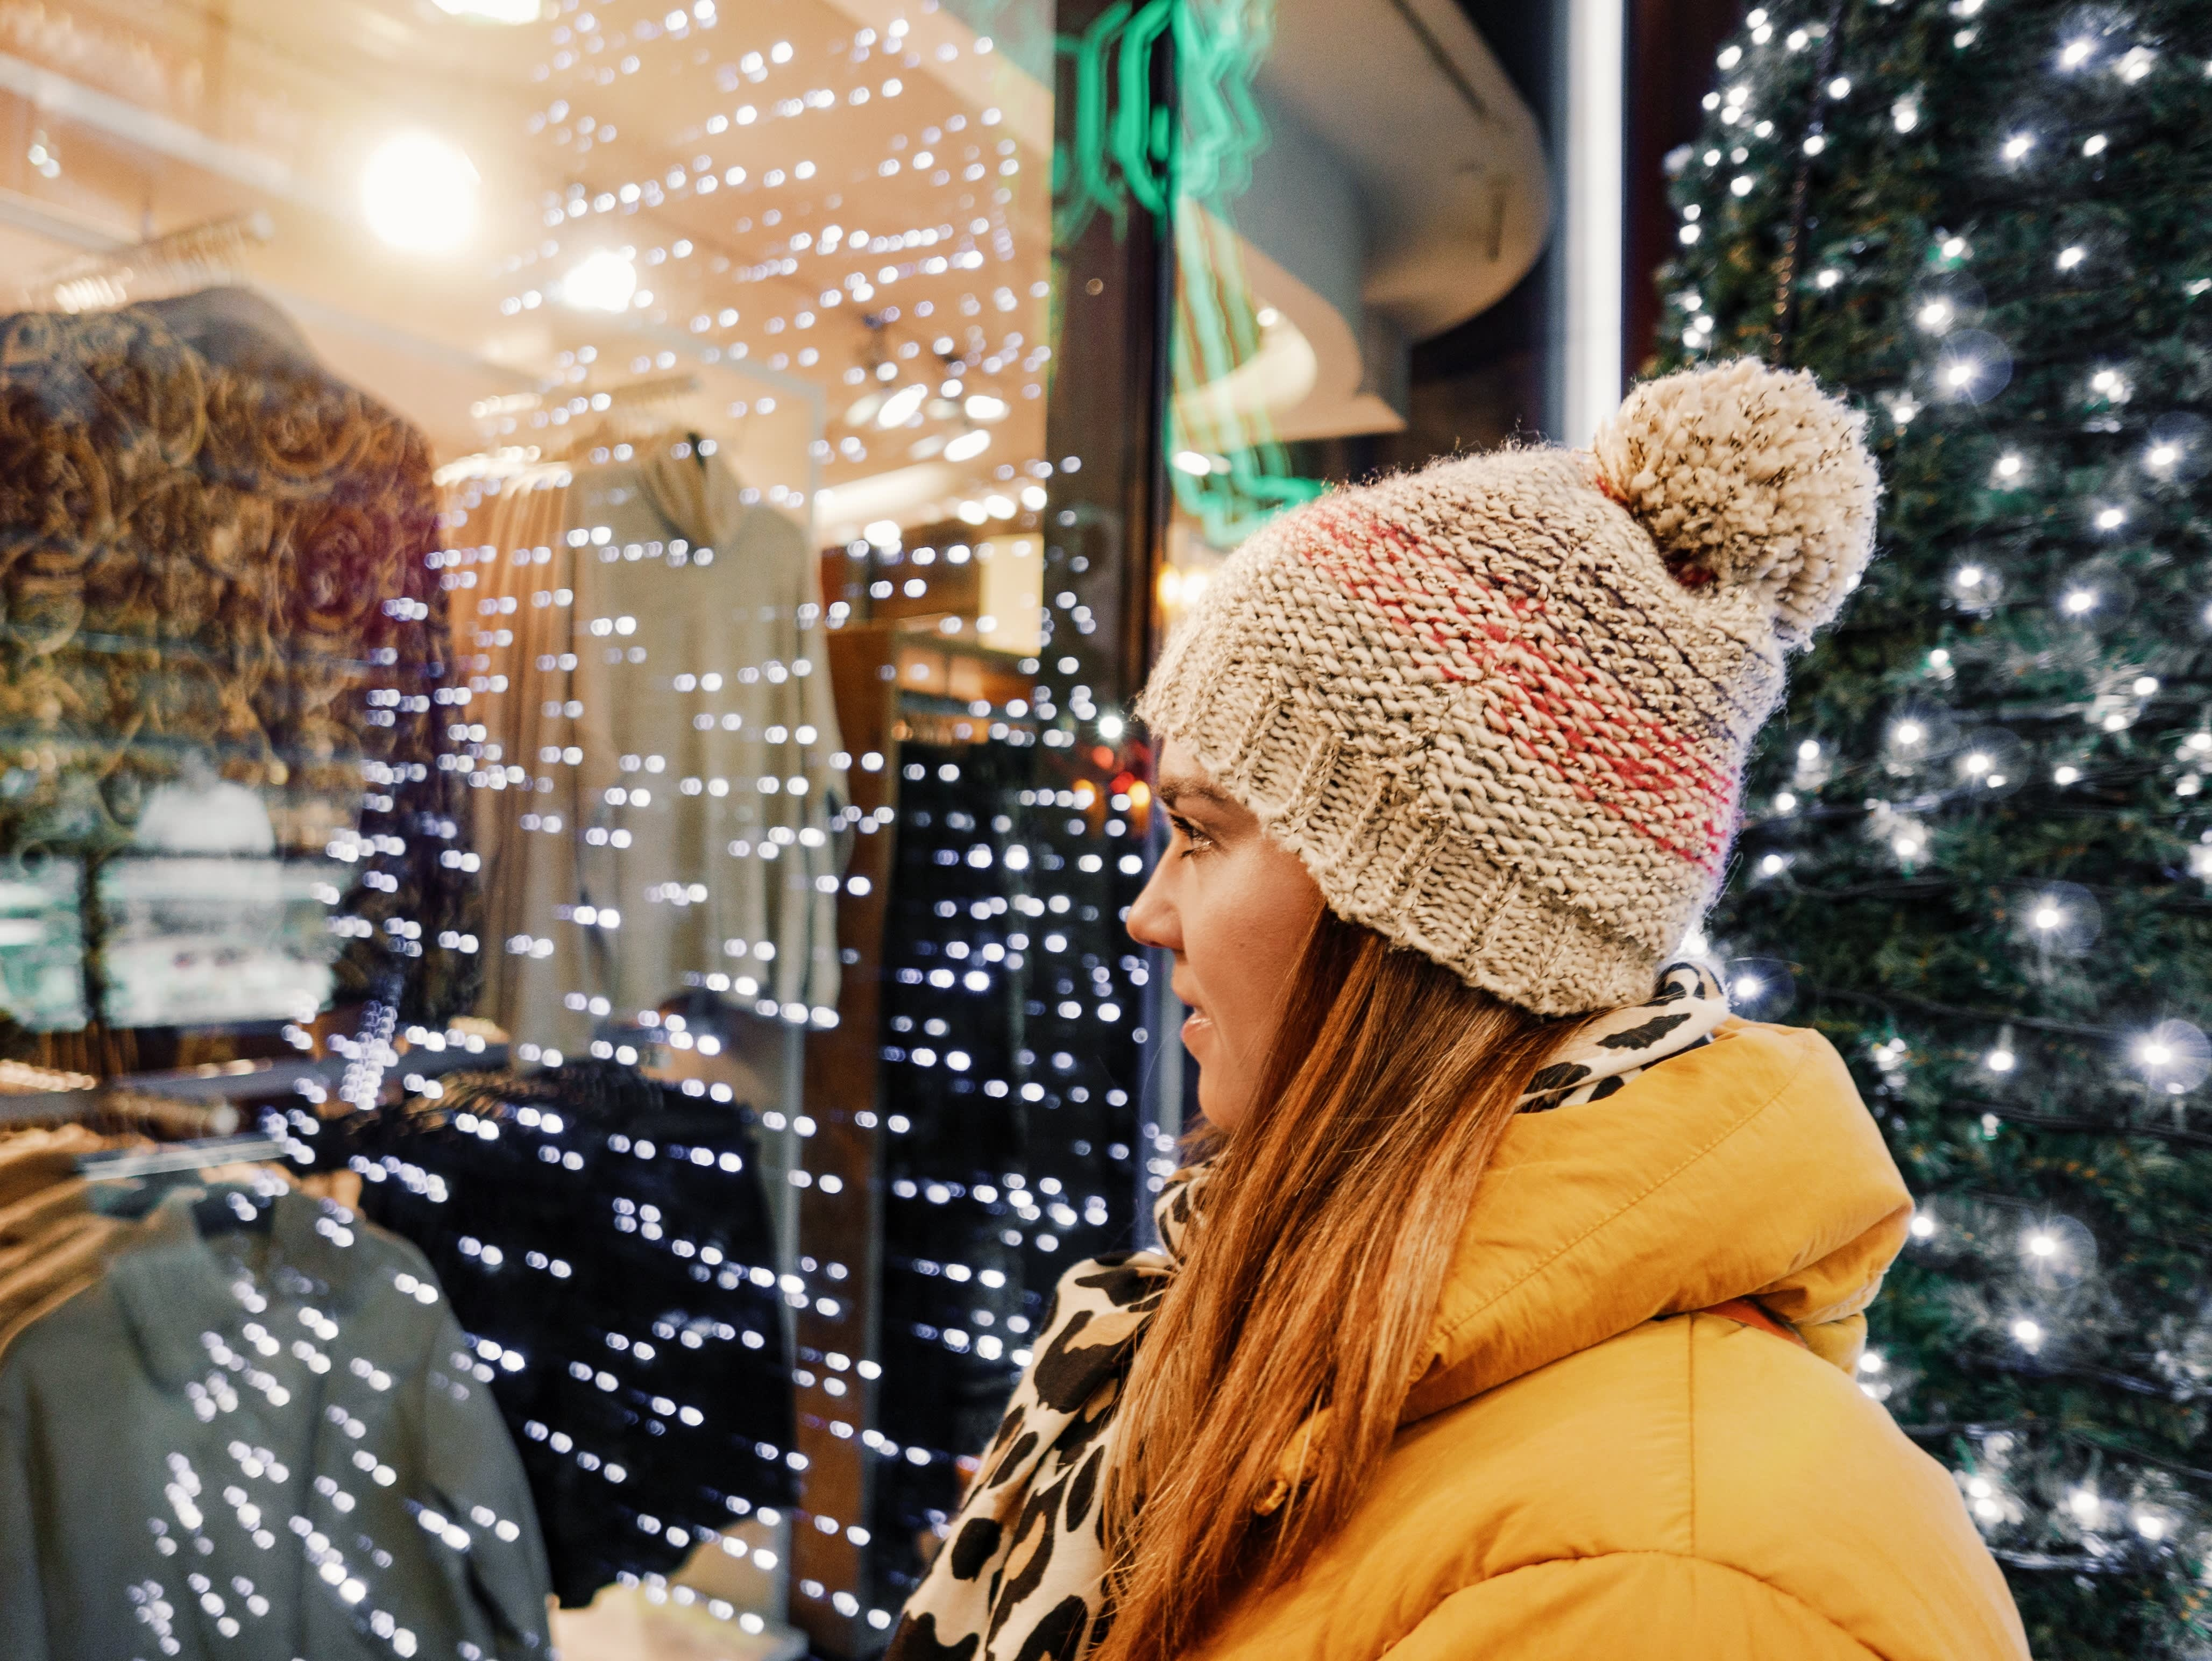 3 tricks to help you avoid overspending this holiday season